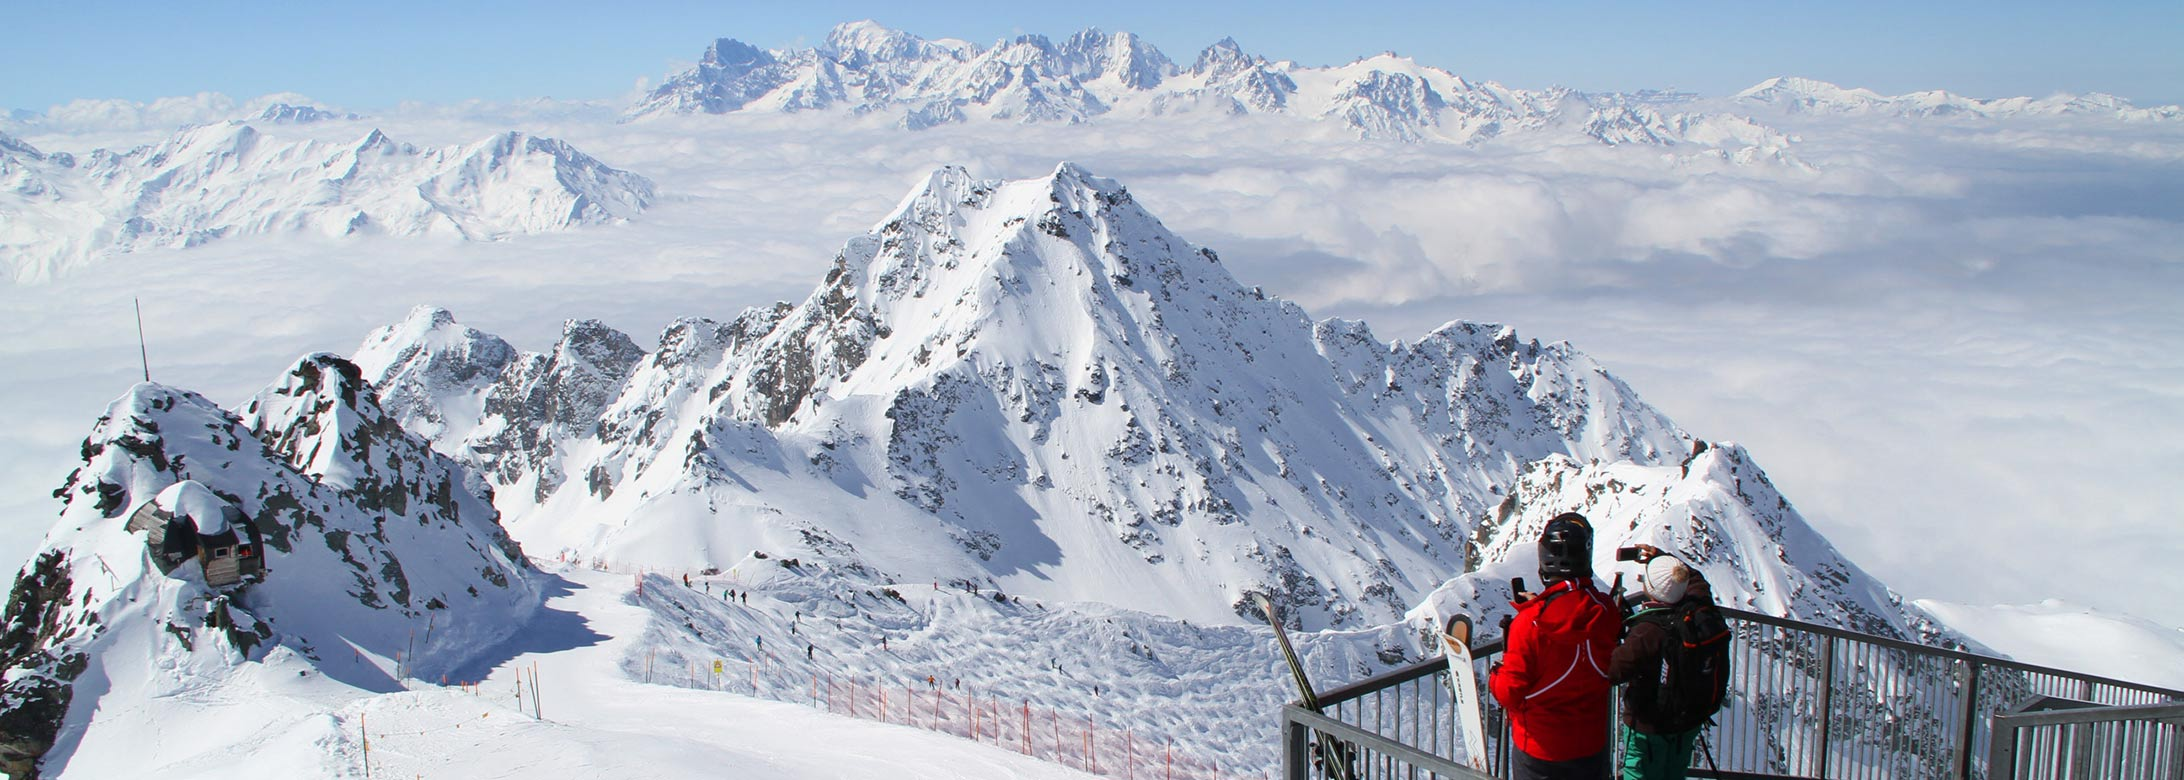 when is the best time to book a ski vacation? - snowpak